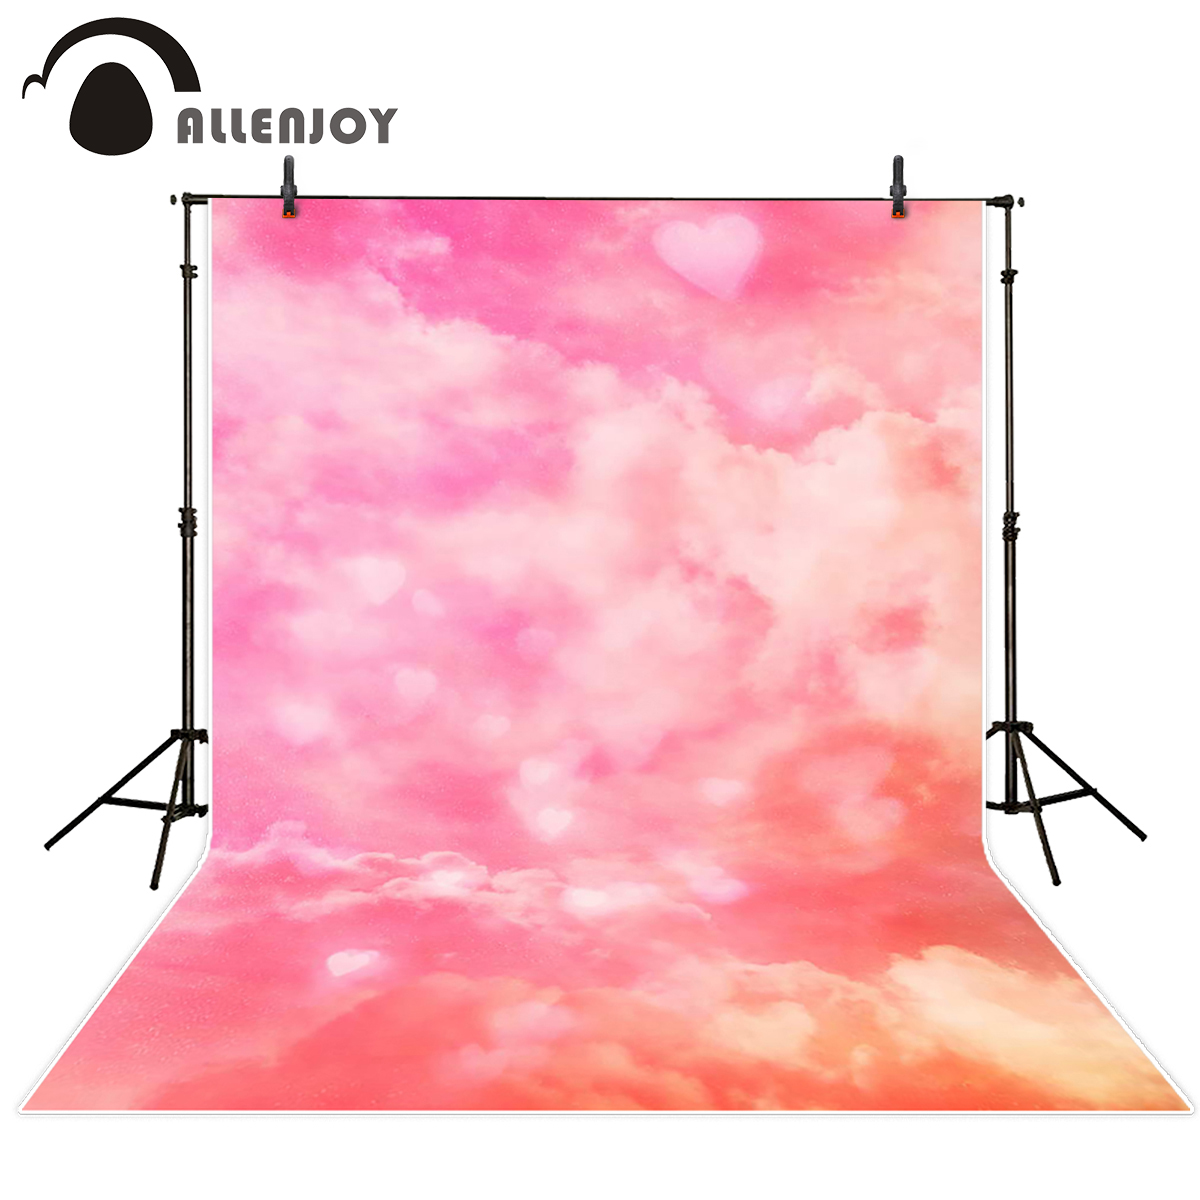 Allenjoy photography backdrops cloud pink love romance background photography backdrop for Valentine's Day send rolled 8x10ft valentine s day photography pink love heart shape adult portrait backdrop d 7324